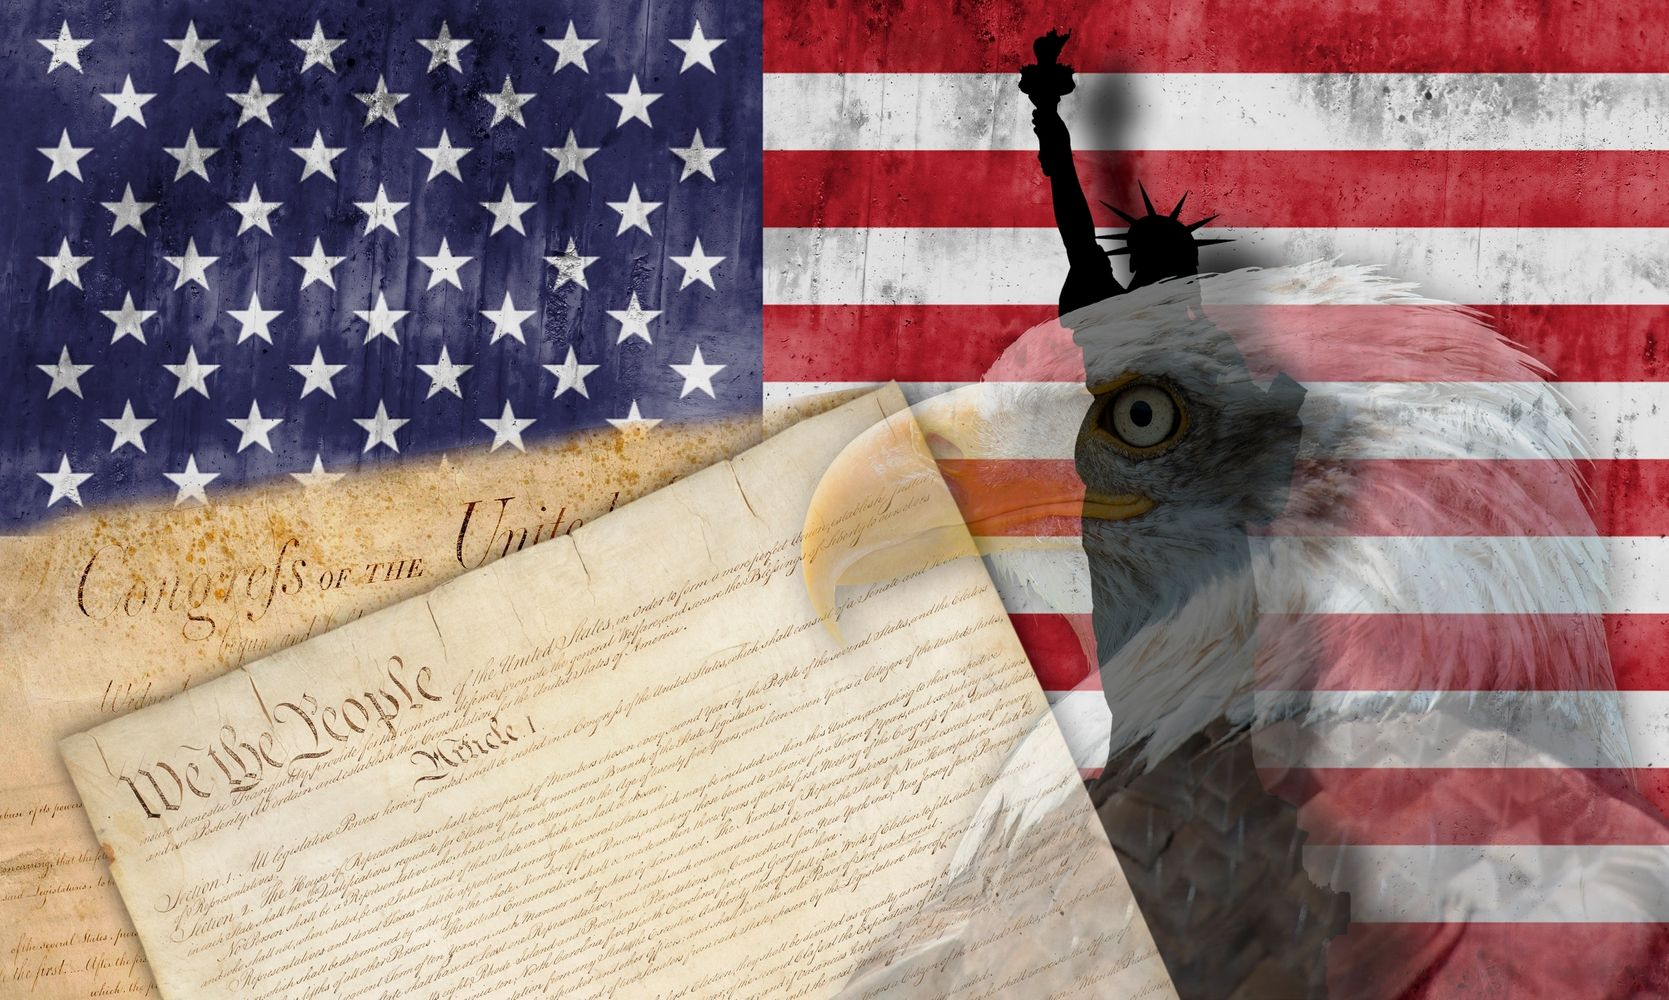 Patriotic  Images : Flag, Constitution, Eagle, Statue of Liberty   Republican Conservative, Values